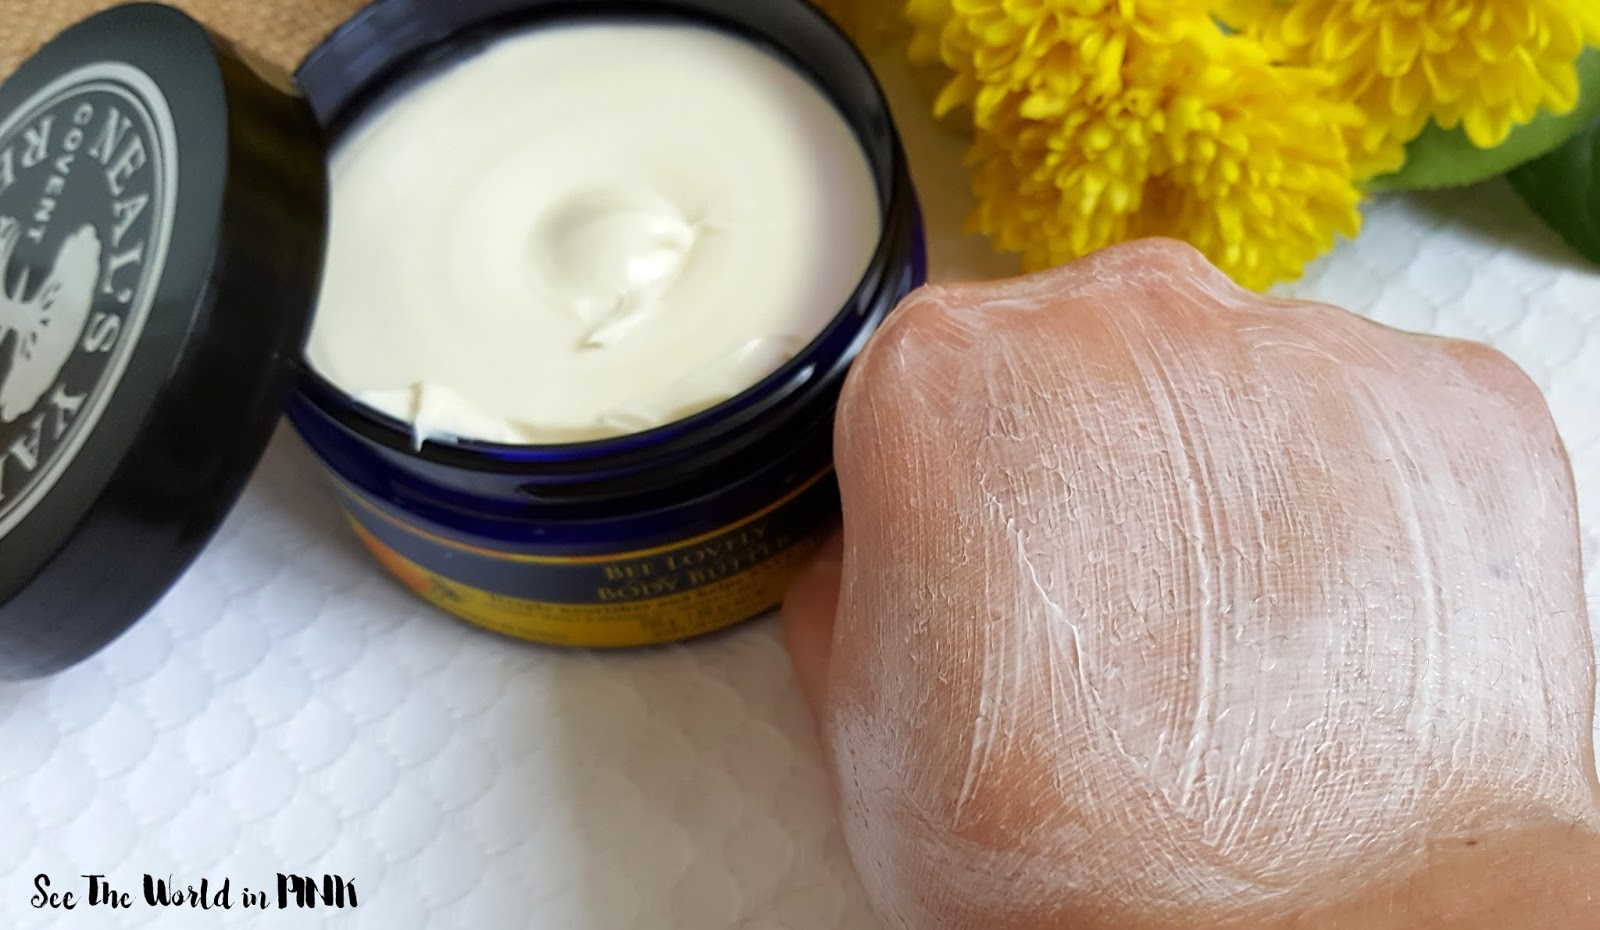 Skincare Sunday - Neal's Yard Remedies Bee Lovely Body Butter Review